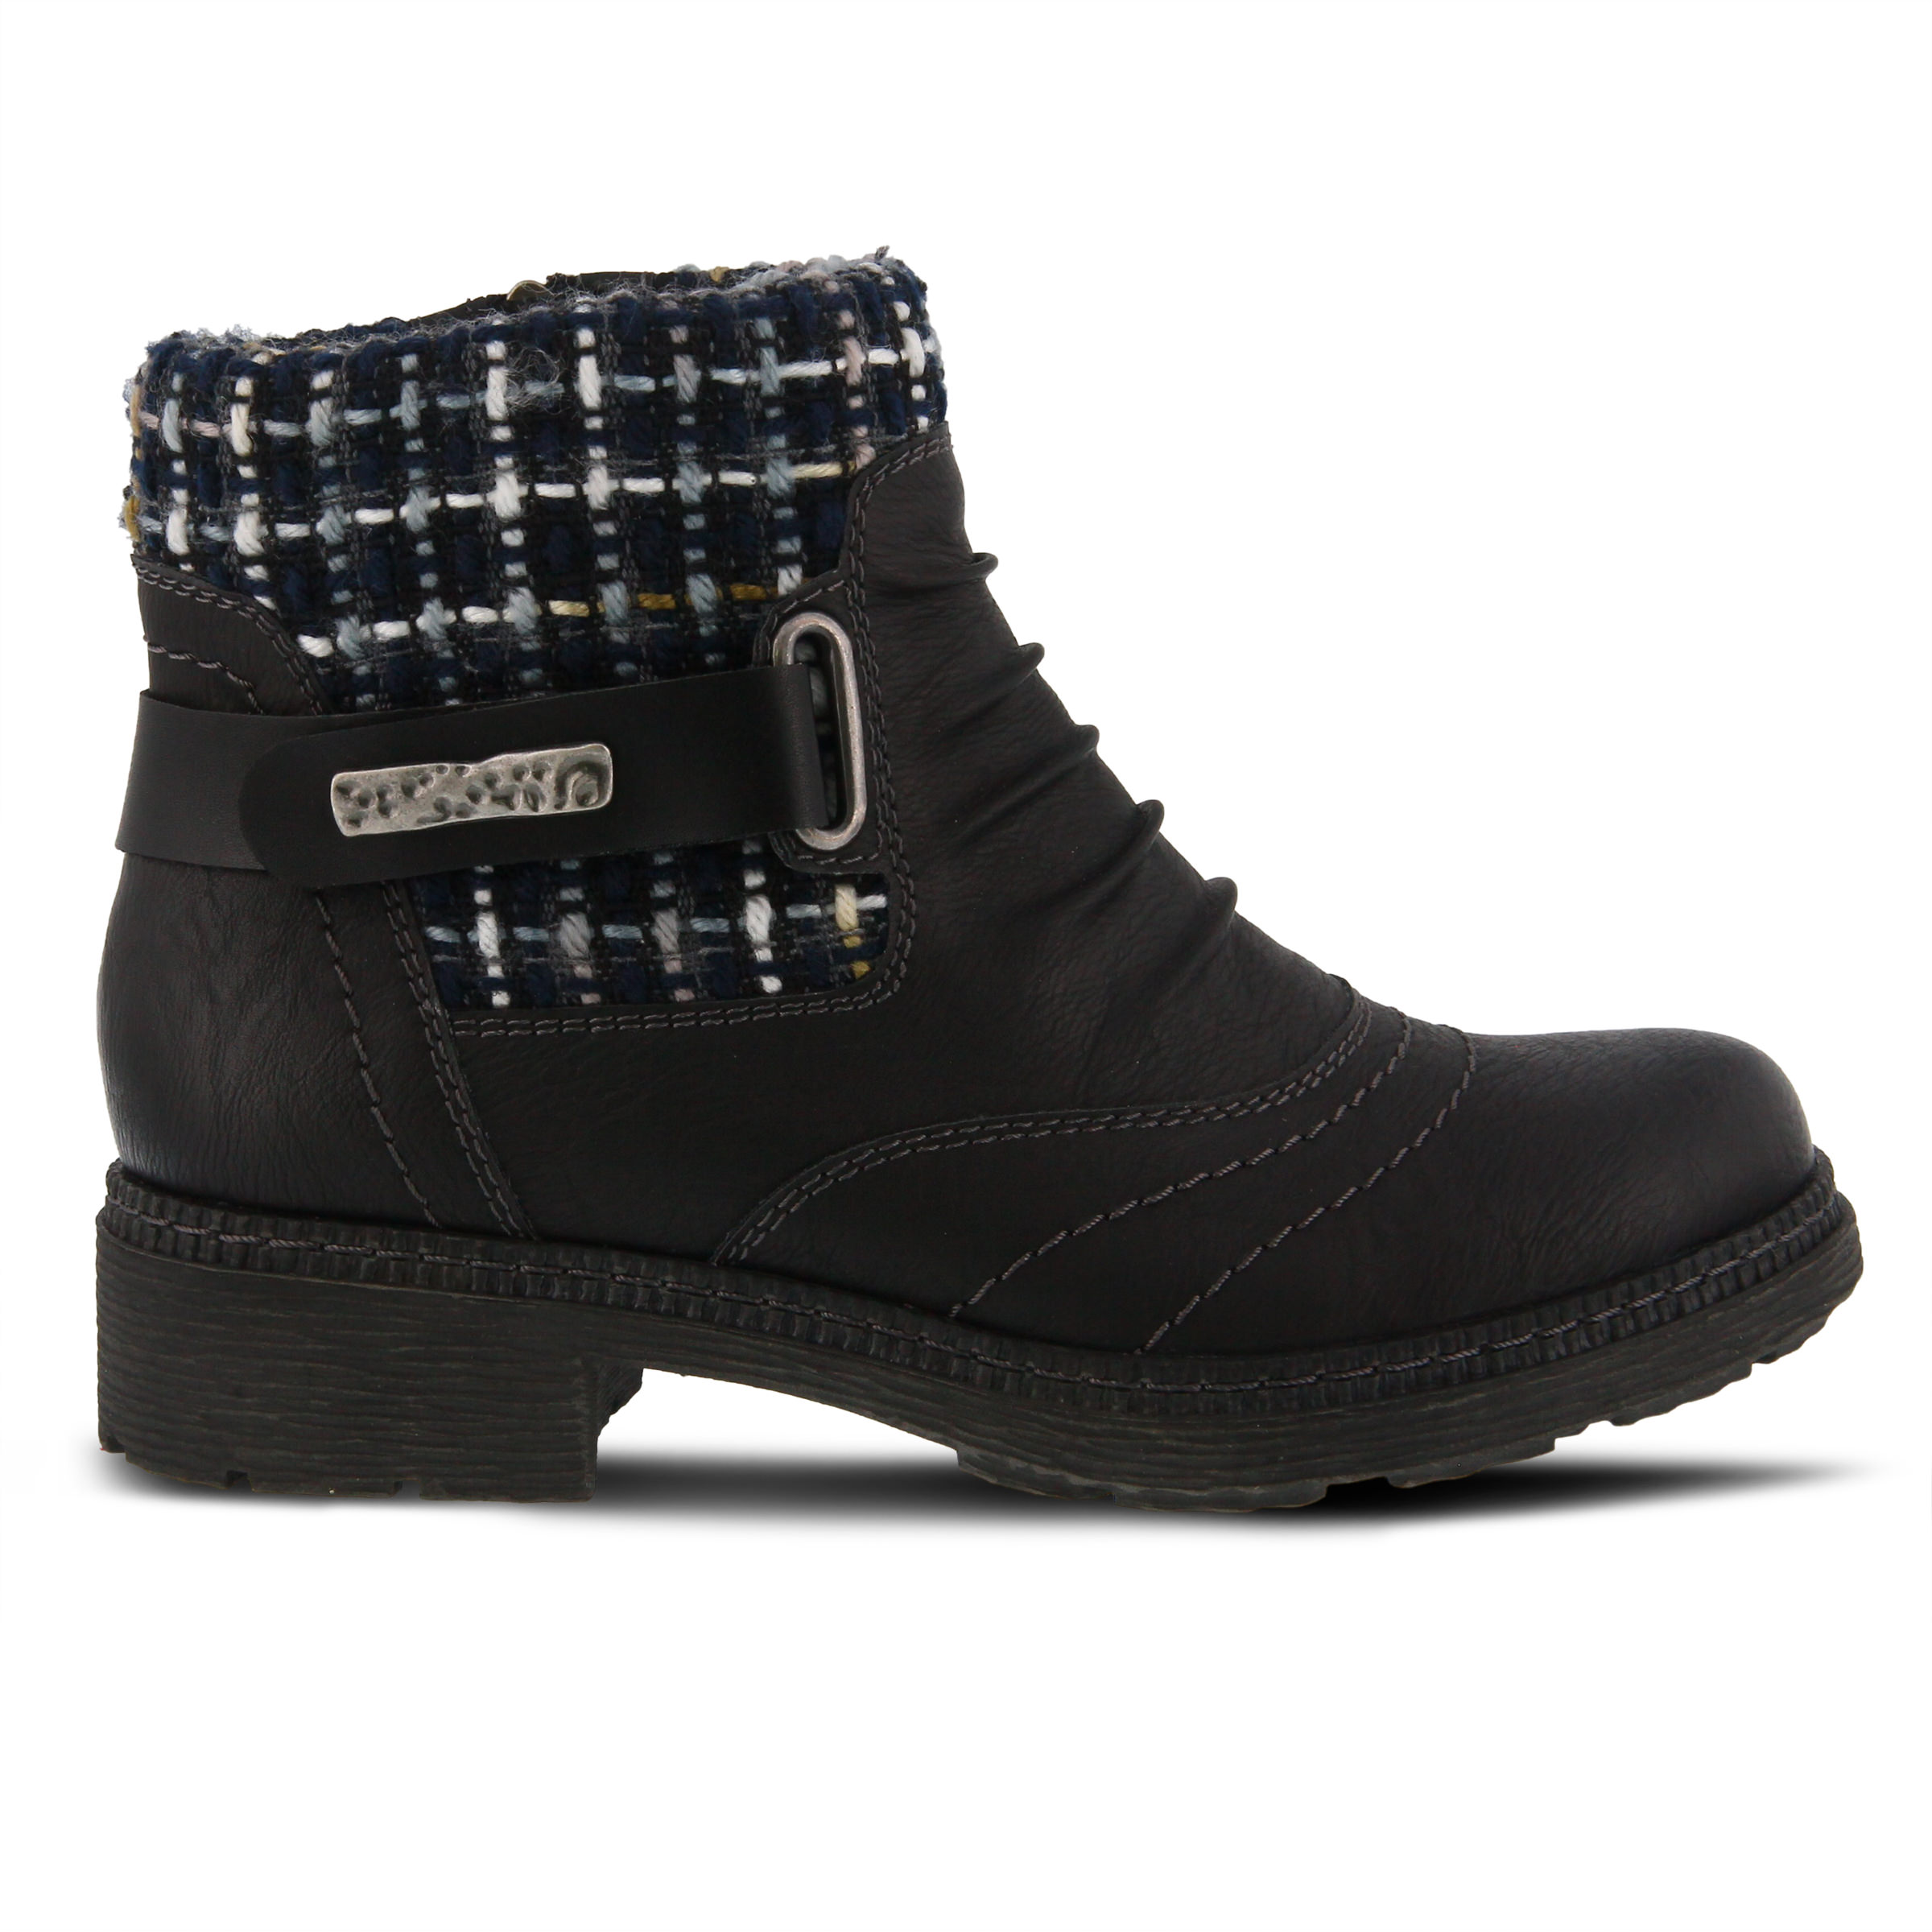 SPRING STEP Citrine Women's Boots (Black Faux Leather)